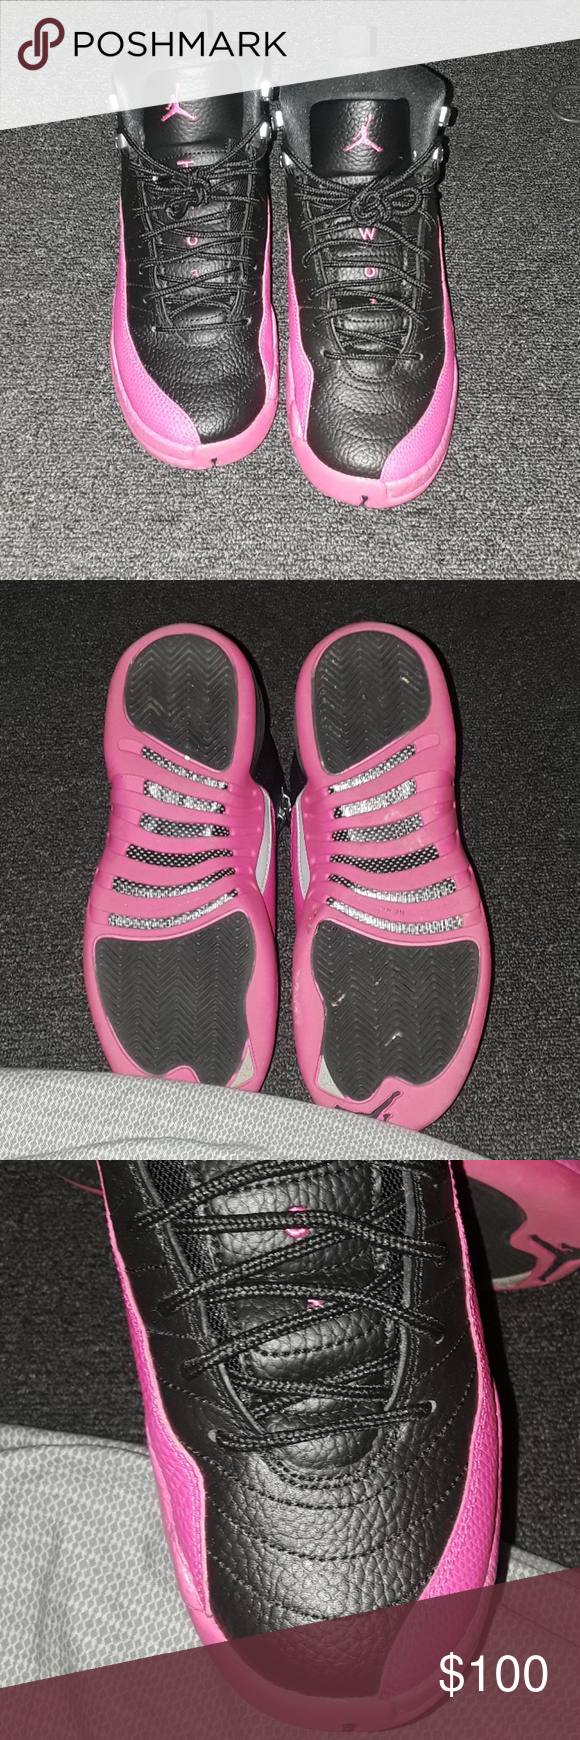 Jordan 12s They are black and pink worn 7 times 6 1/2 but fits up to a size 7 Jordan Shoes Sneakers